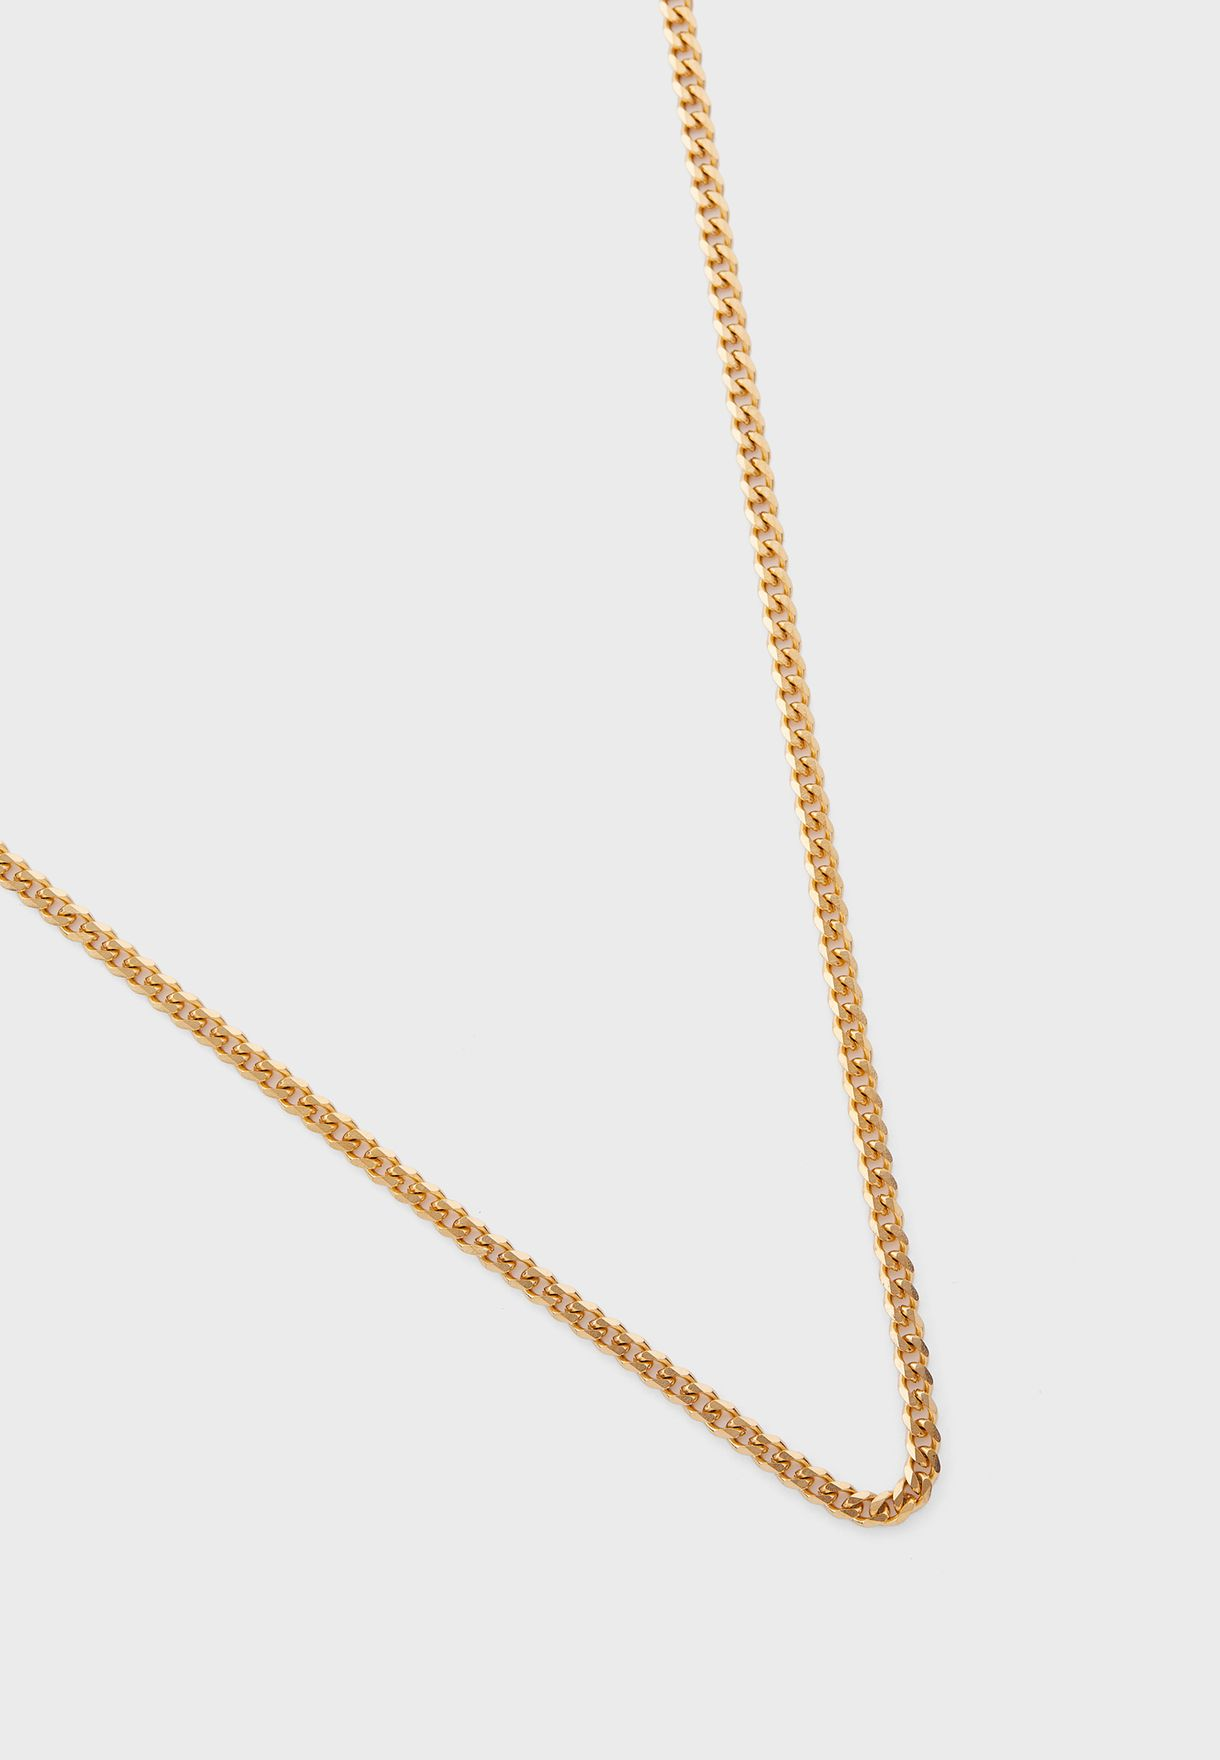 Cuban Link Chain Necklace - 22 Inches